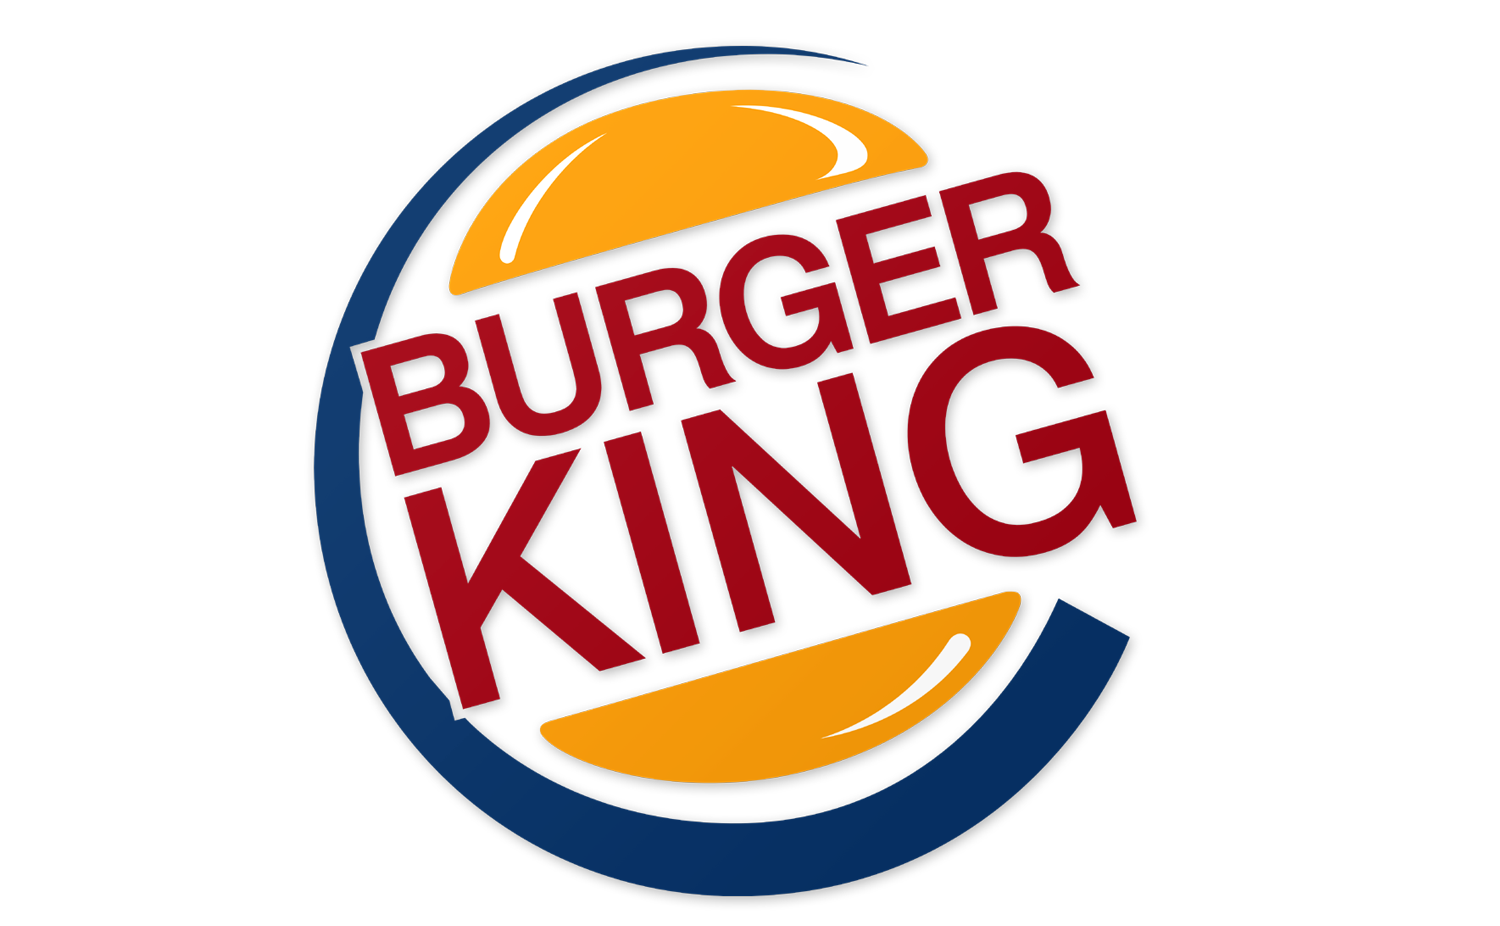 play burger king png logo #3276